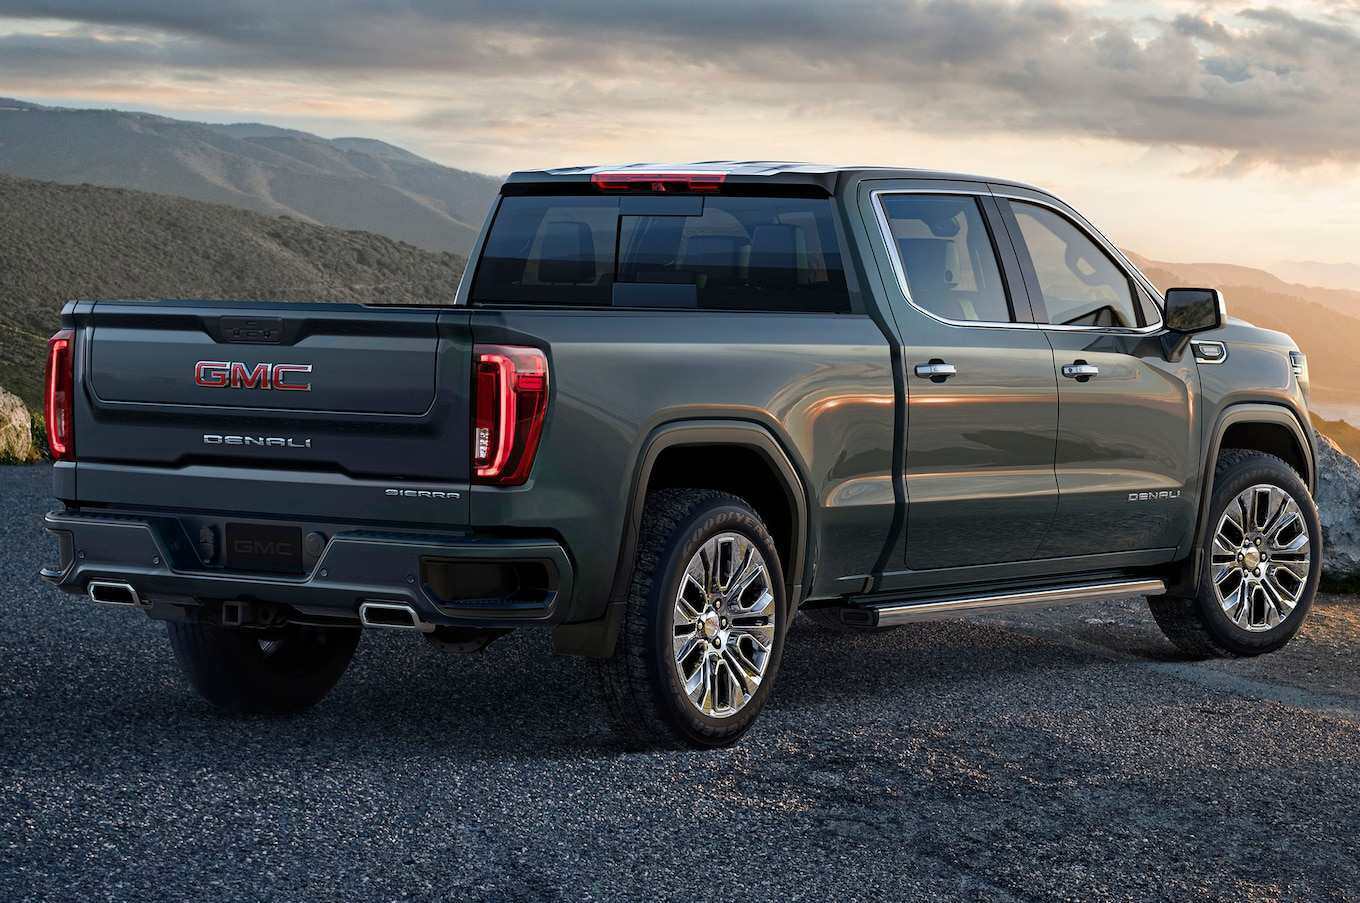 56 Gallery of Best Gmc Regular Cab 2019 Specs Research New with Best Gmc Regular Cab 2019 Specs